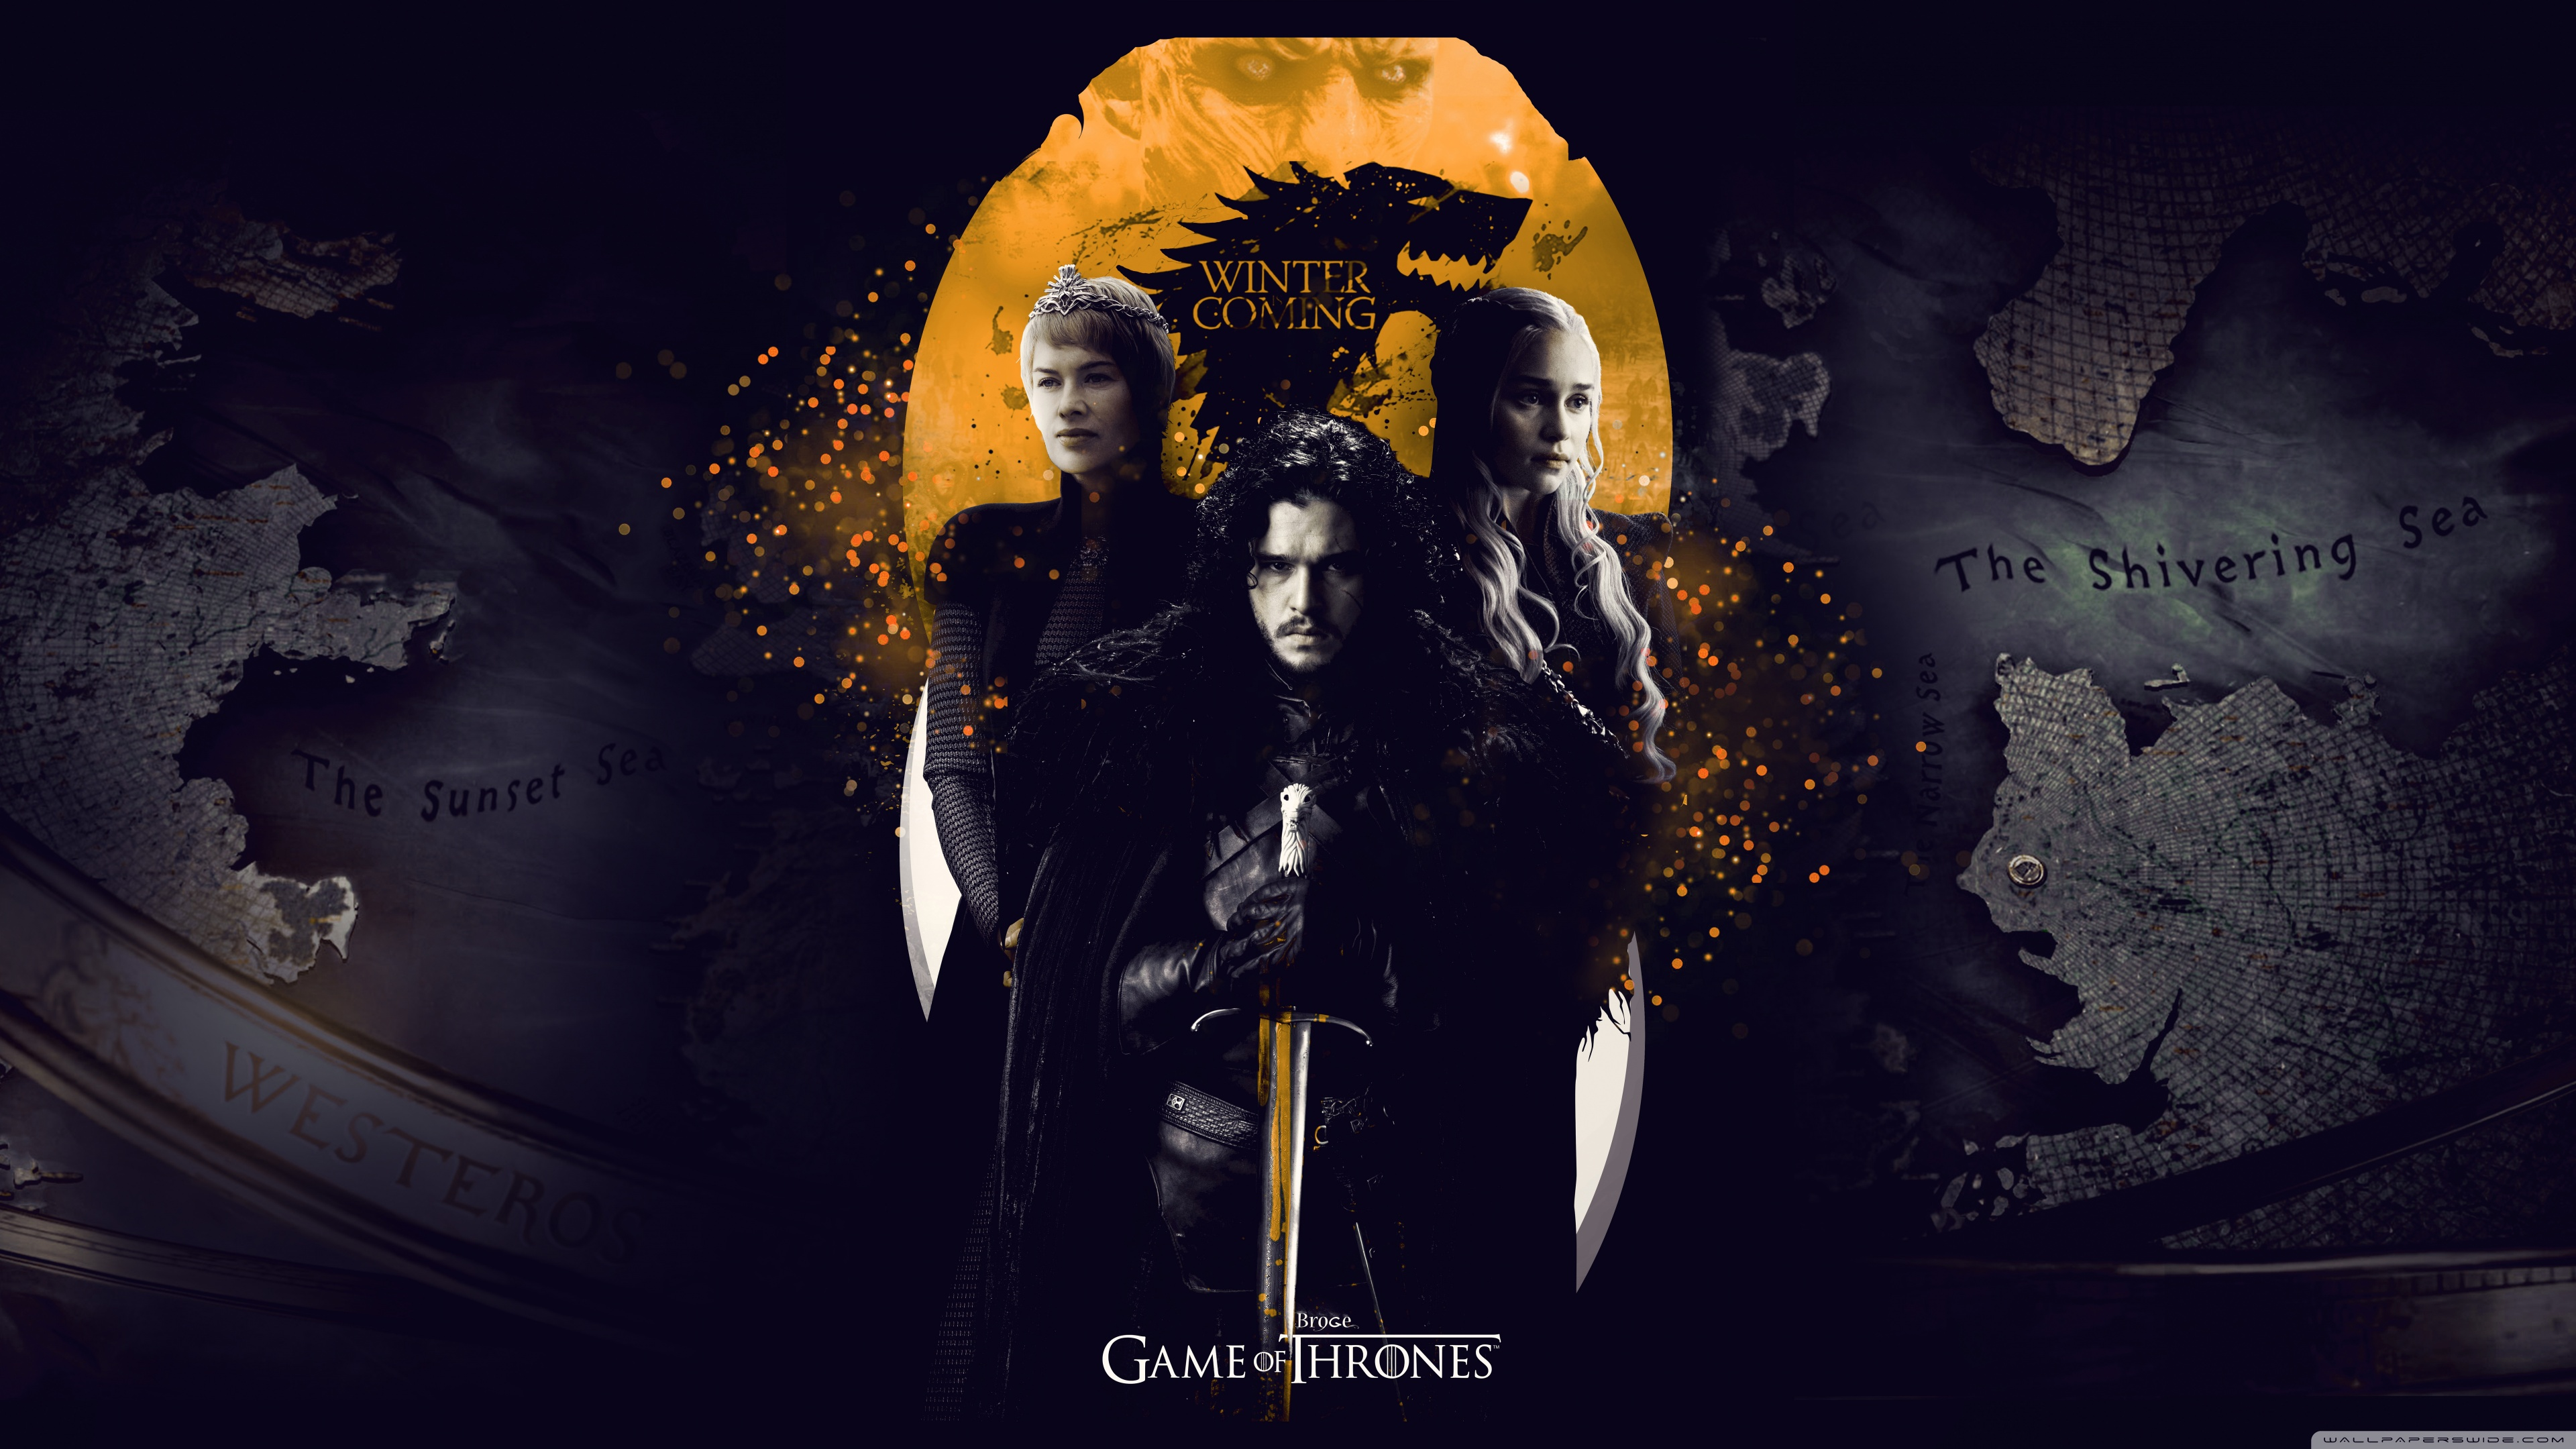 hd game of thrones, game of thrones season 7 wallpaper